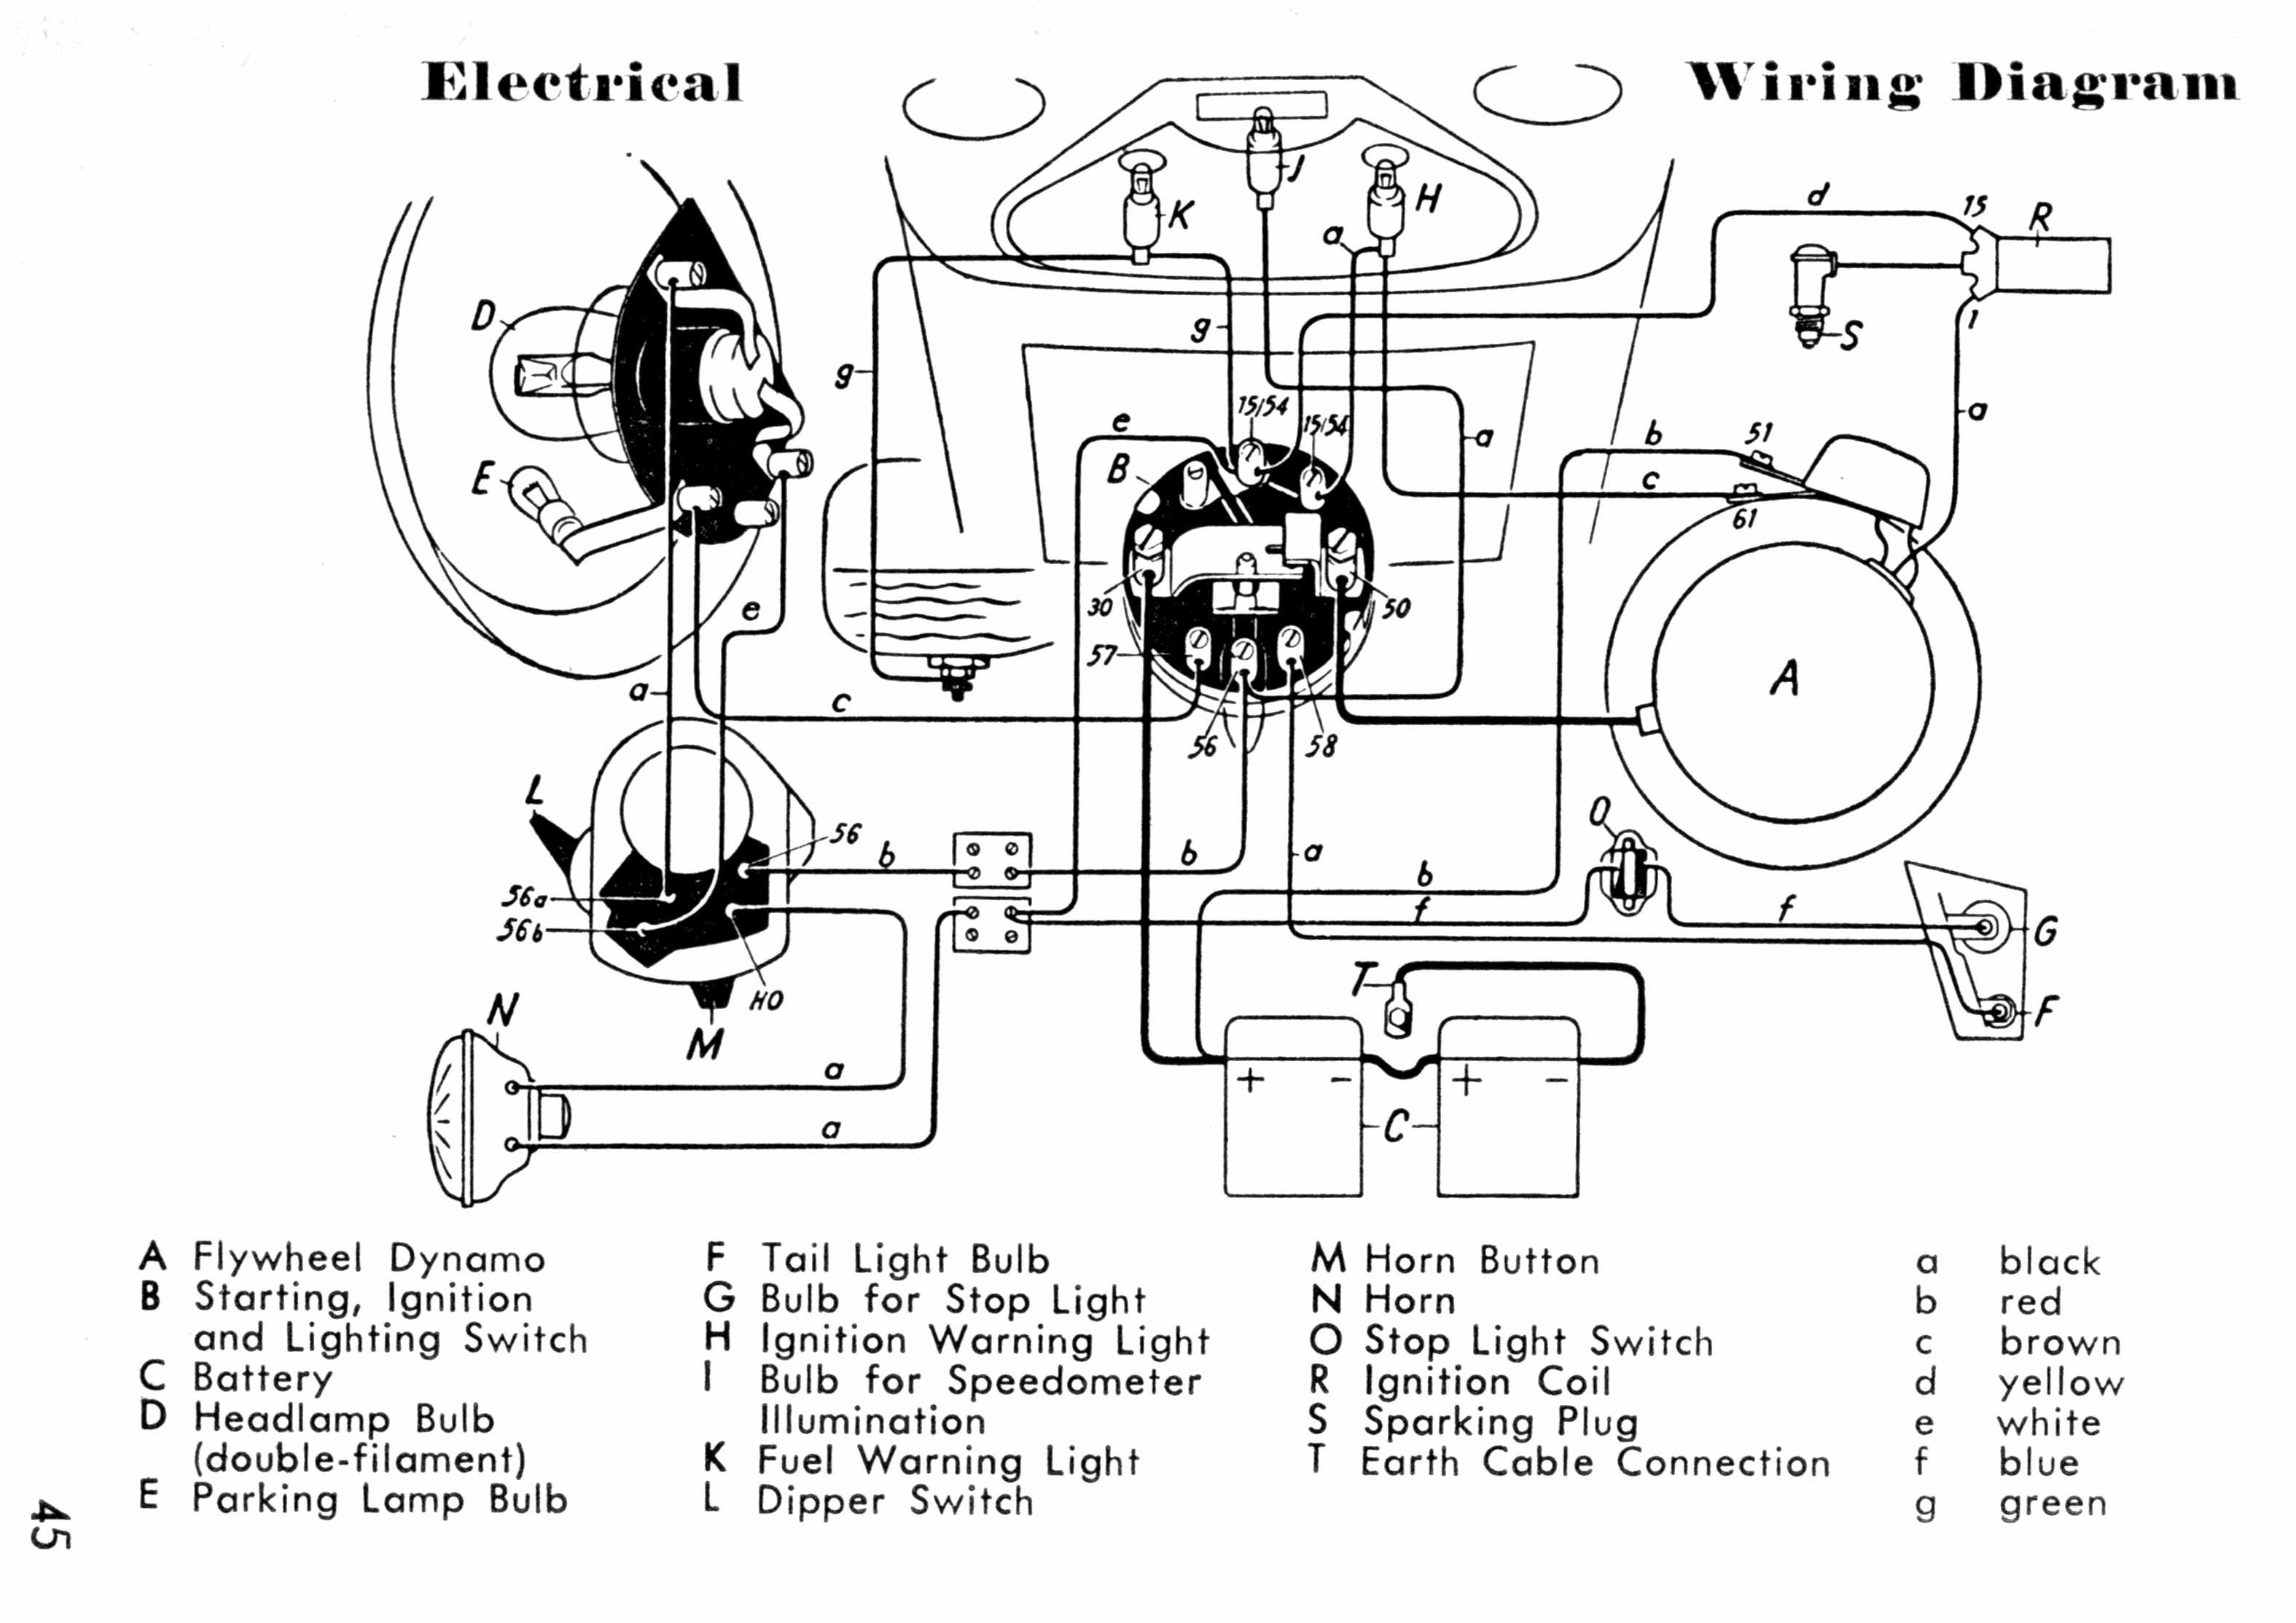 schematic electric scooter wiring diagram closet pinterest rh pinterest com E Scooter Wiring Diagram 24V E Scooter Wiring Diagram